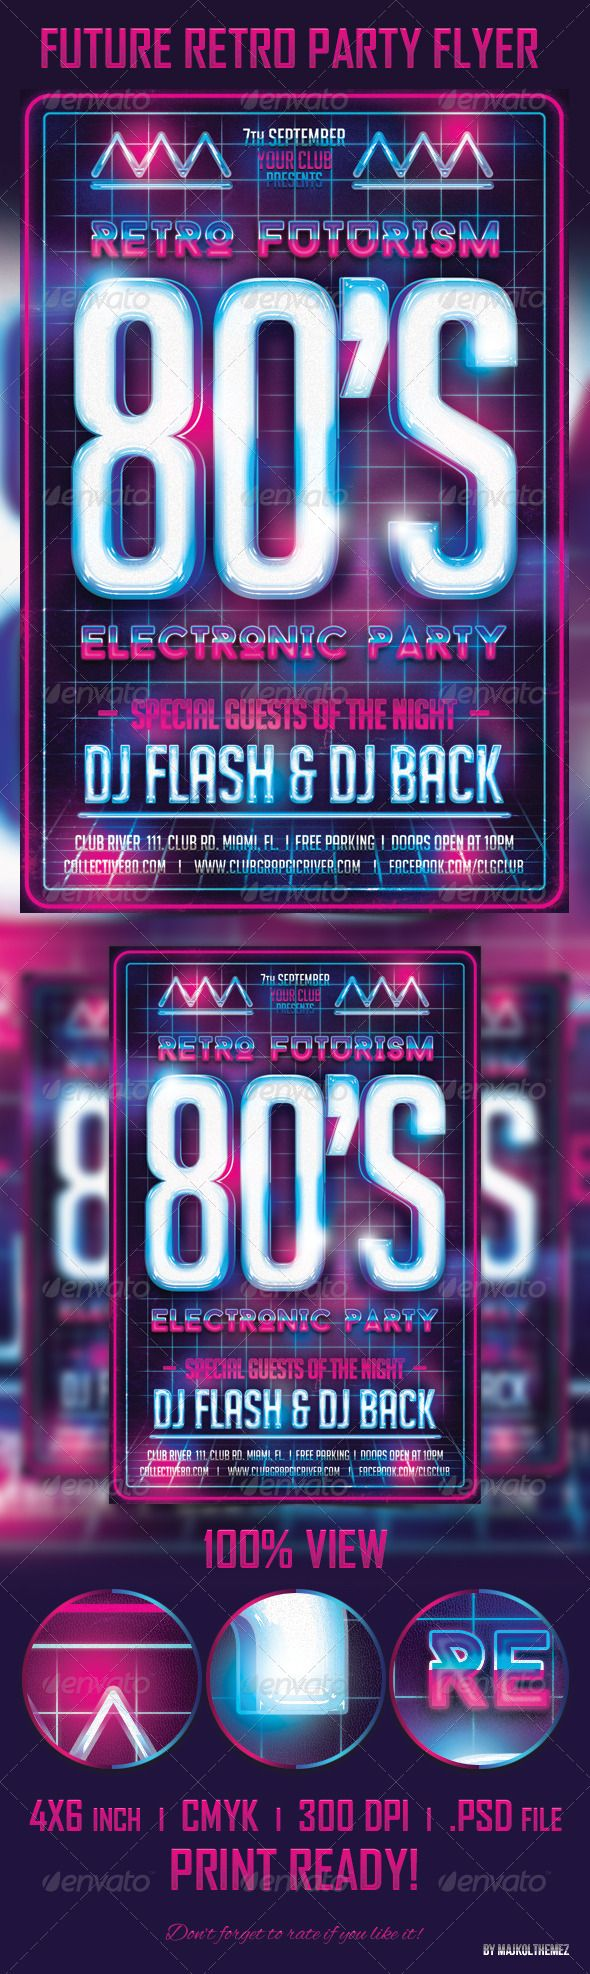 Future Retro Party Flyer Template | Retro party, Party flyer and ...